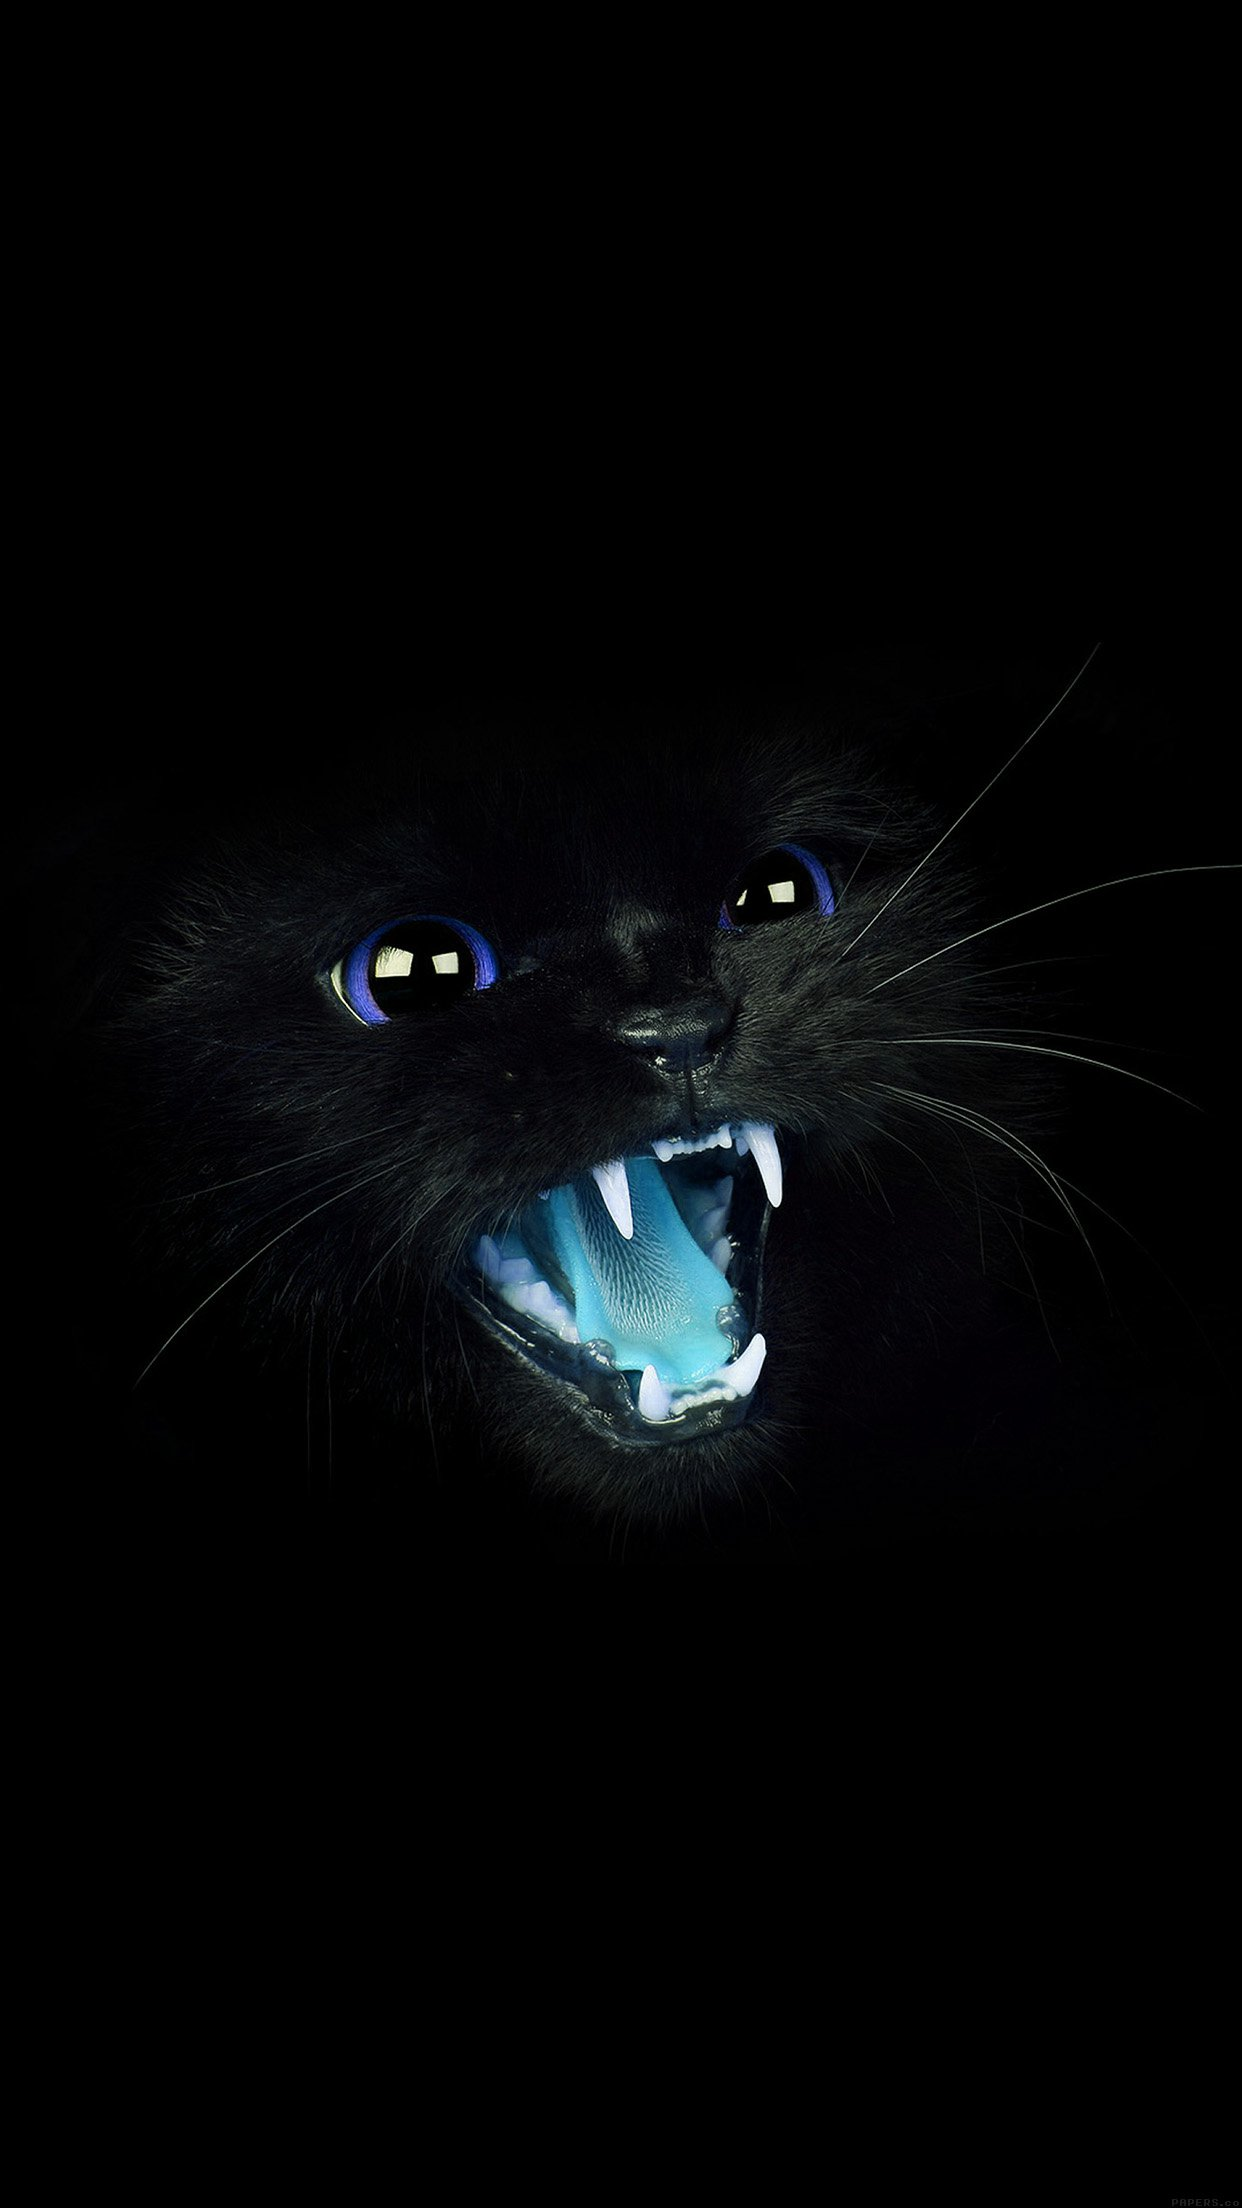 black cat blue eye roar animal cute android wallpaper android hd wallpapers